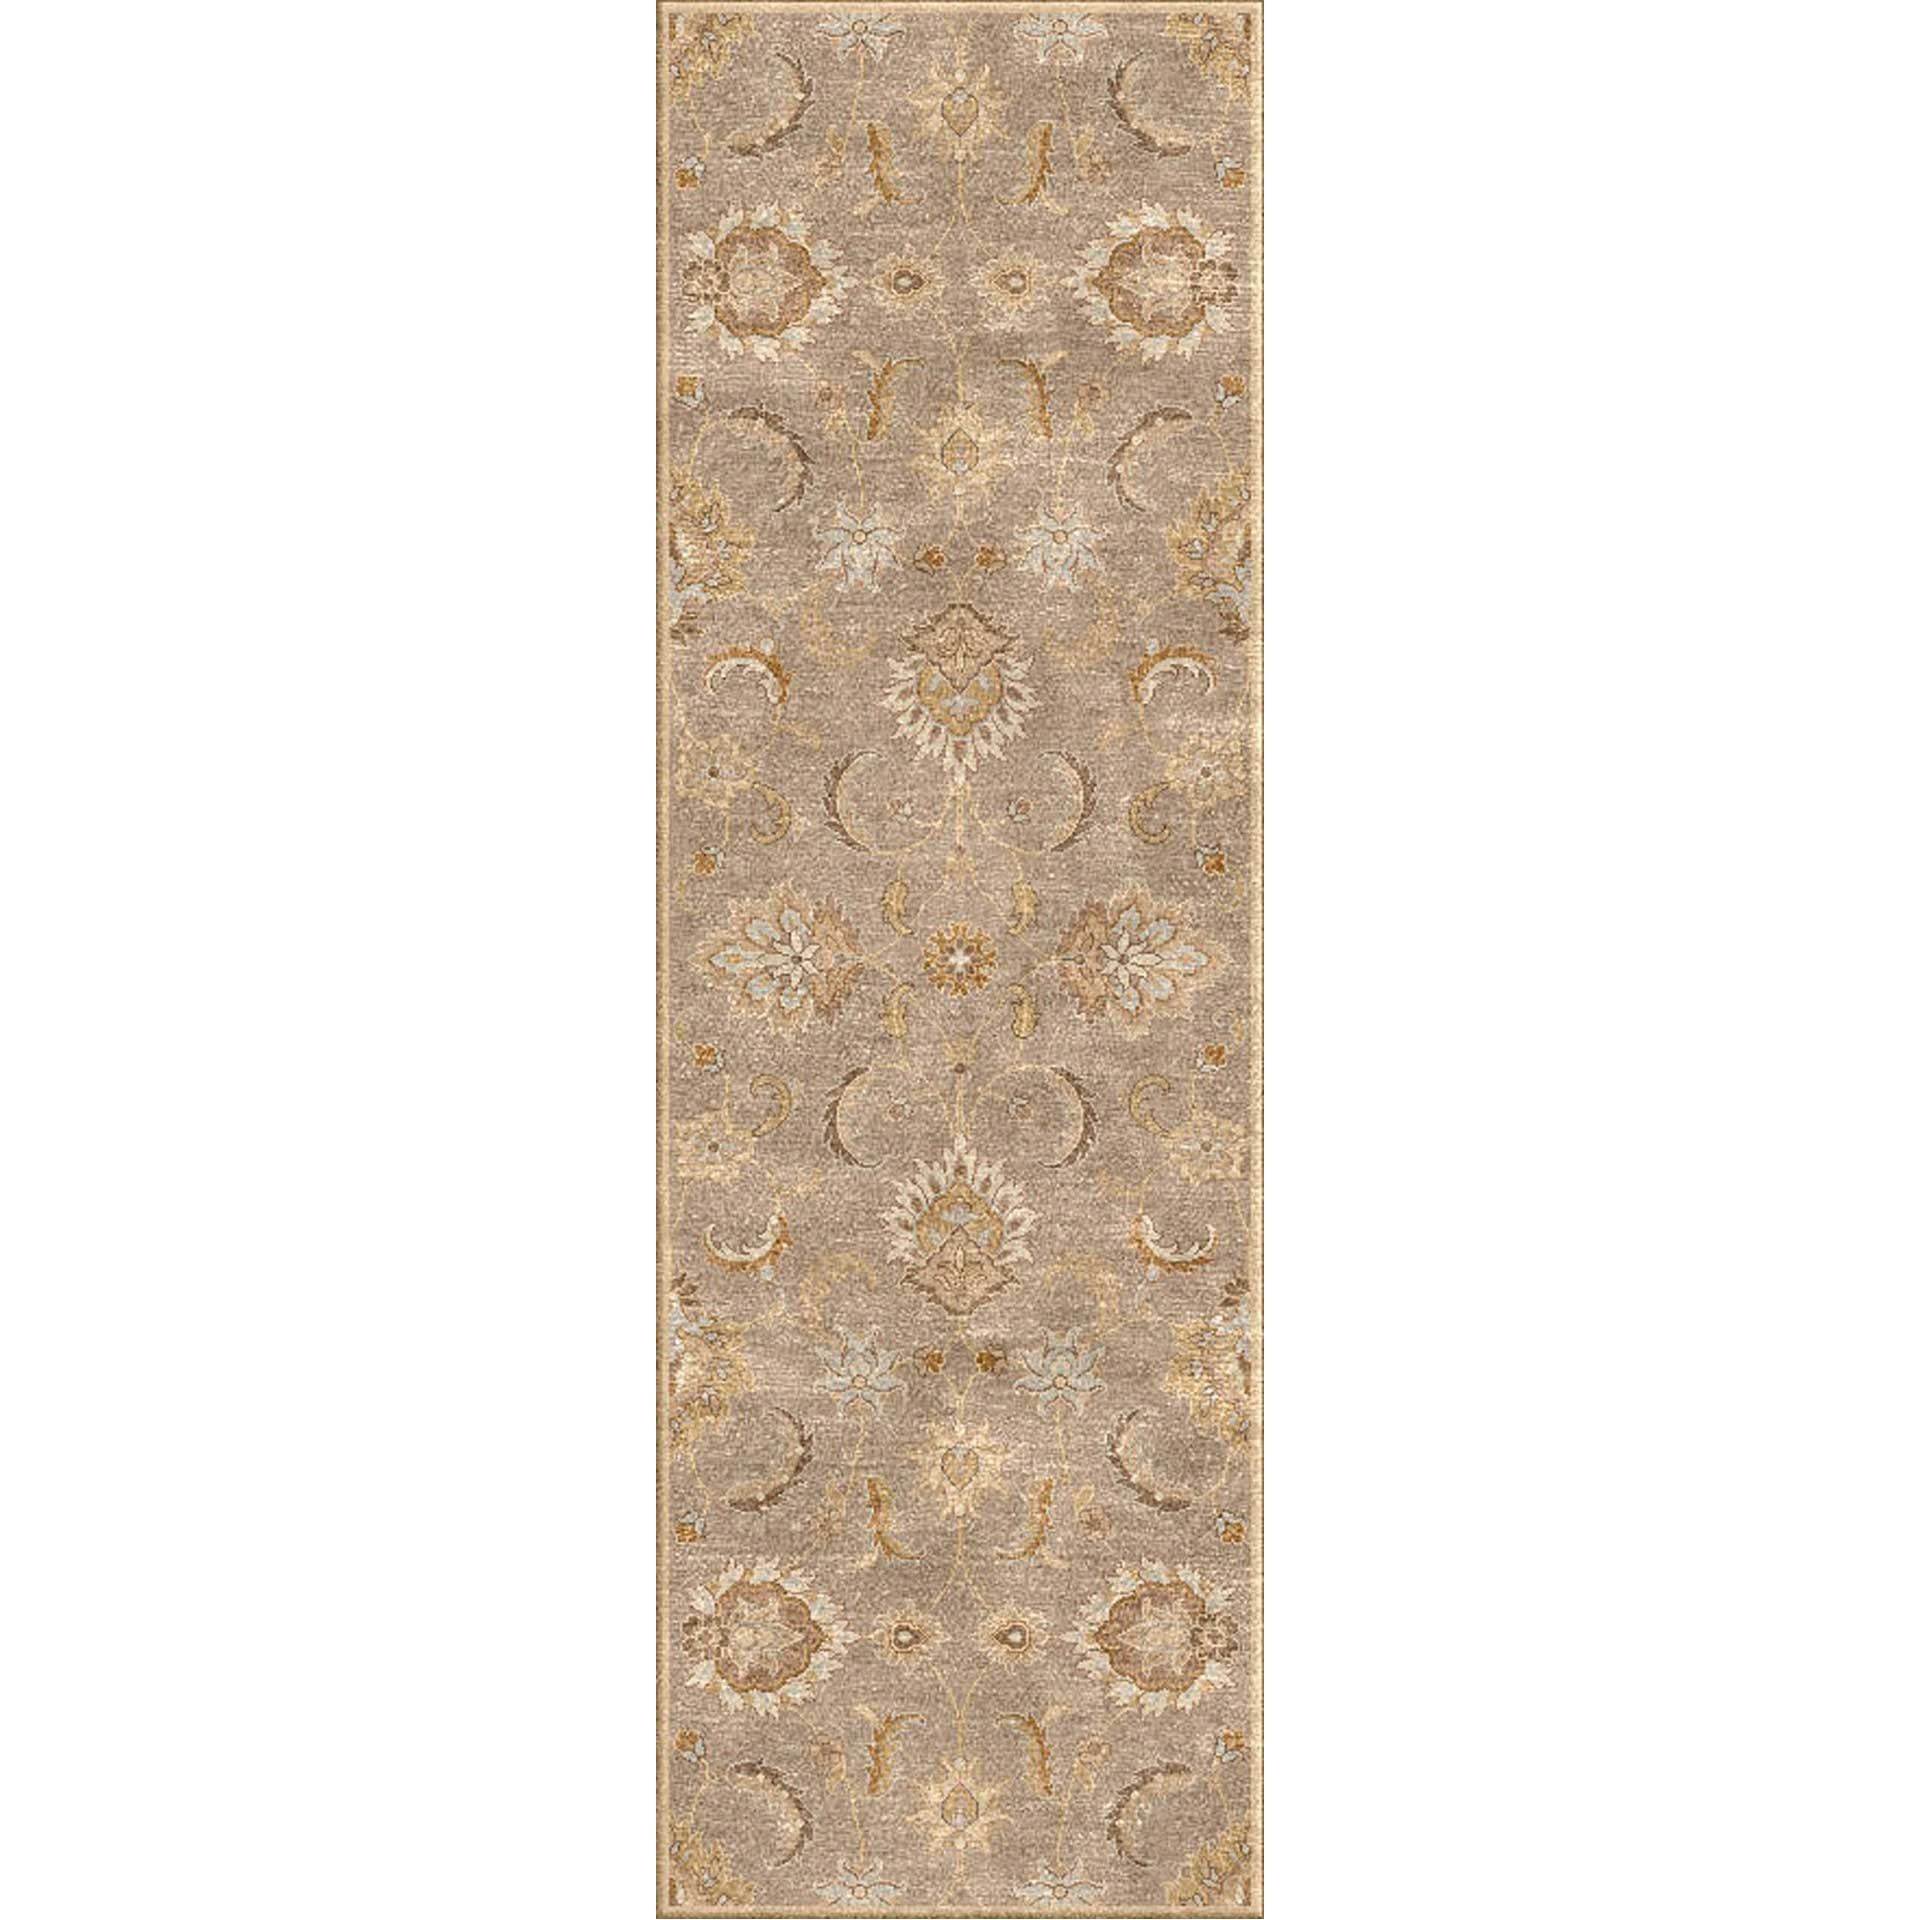 Mythos Abers Silver Gray/Soft Gold Runner Rug